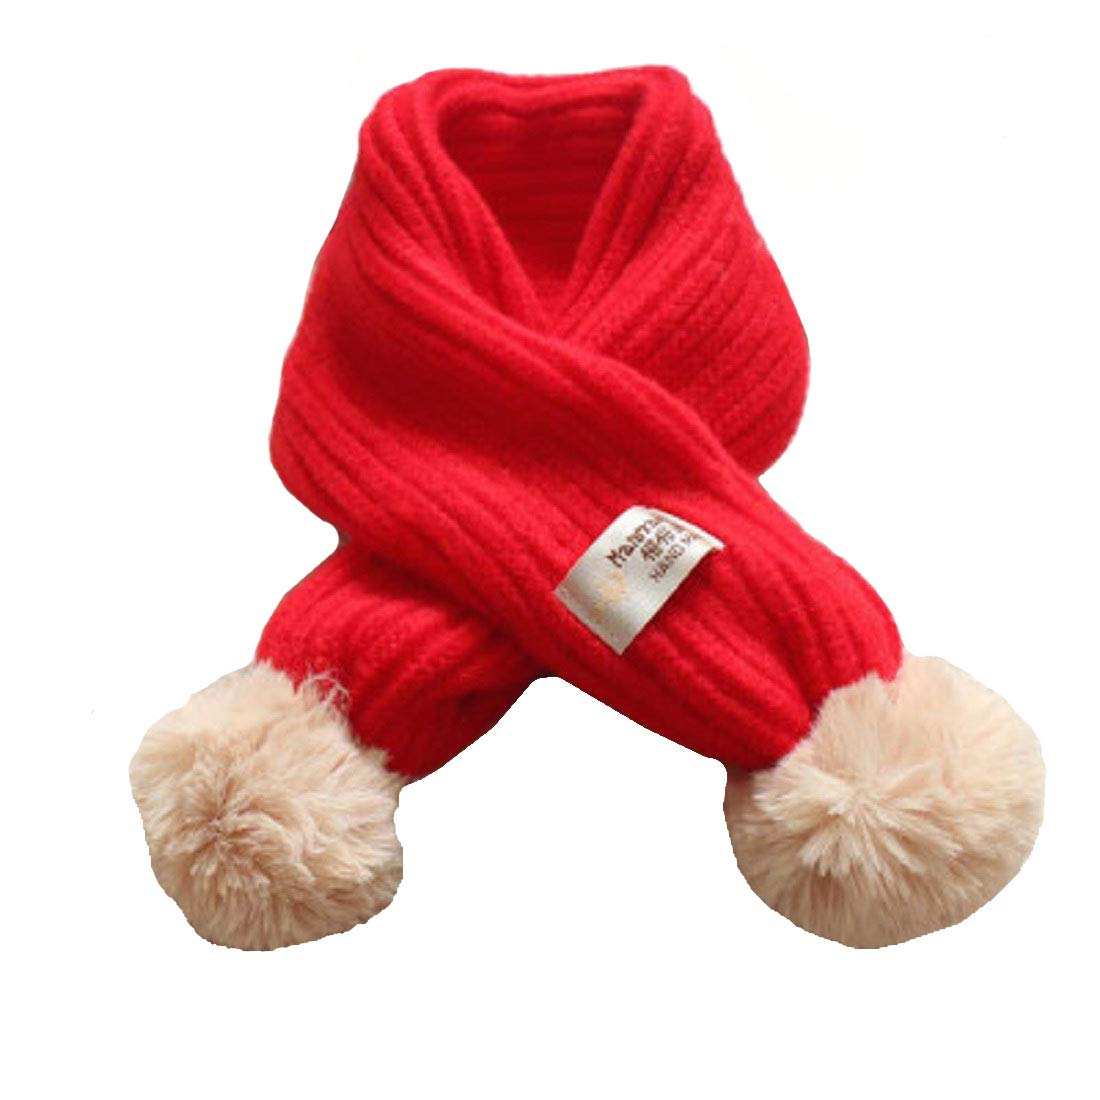 Boomly Infant Toddler Cotton Scarf Baby Winter Collar Neck Warmer Warm Neckerchiefs With PomPom